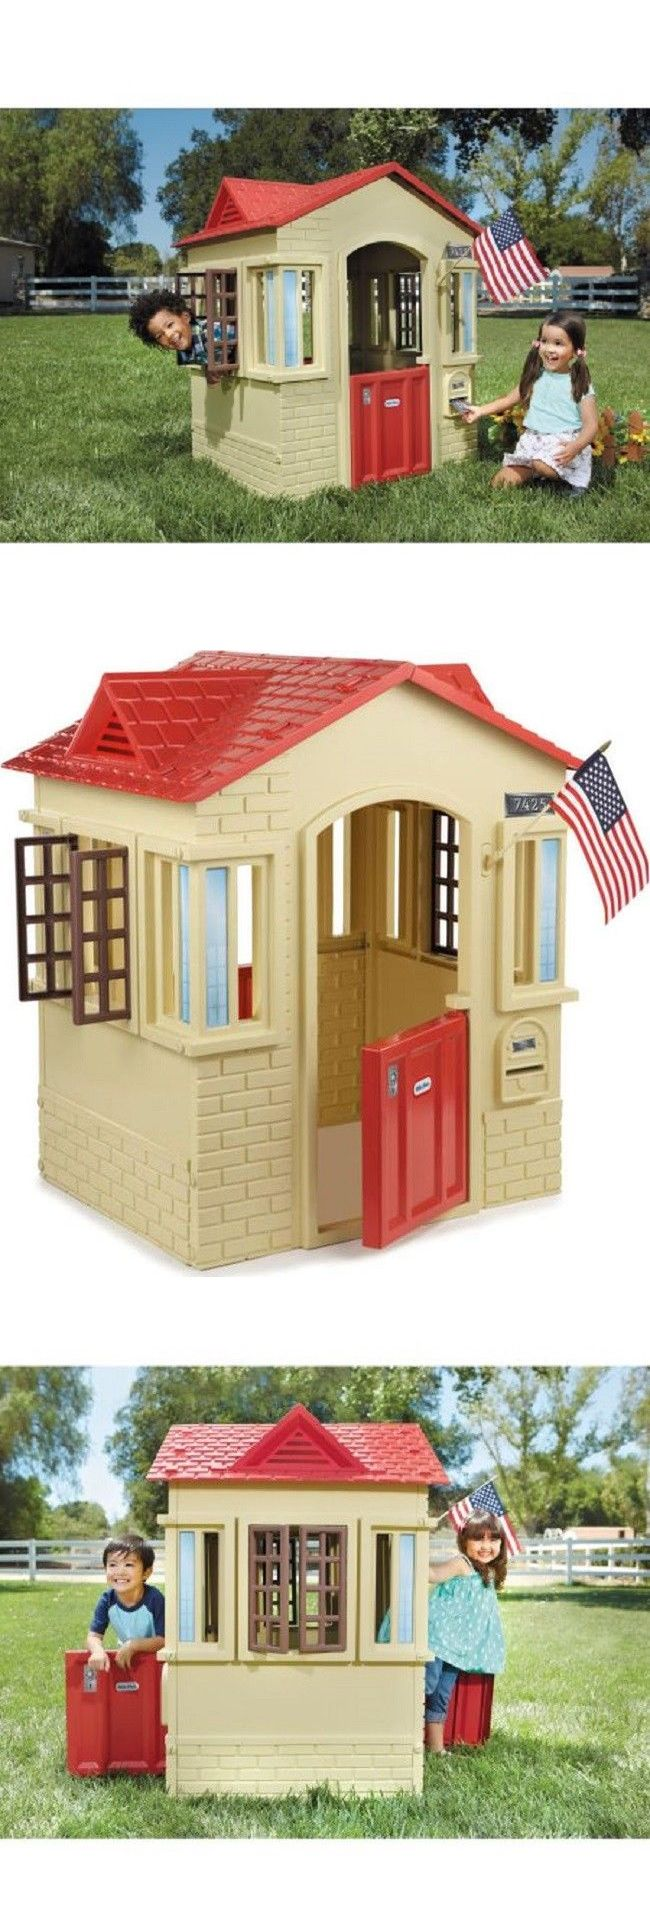 Permanent Playhouses 145995: Playhouse Outdoor Indoor Little Tikes Kids Outside Cottage Toddler Childrens New -> BUY IT NOW ONLY: $109.57 on eBay!